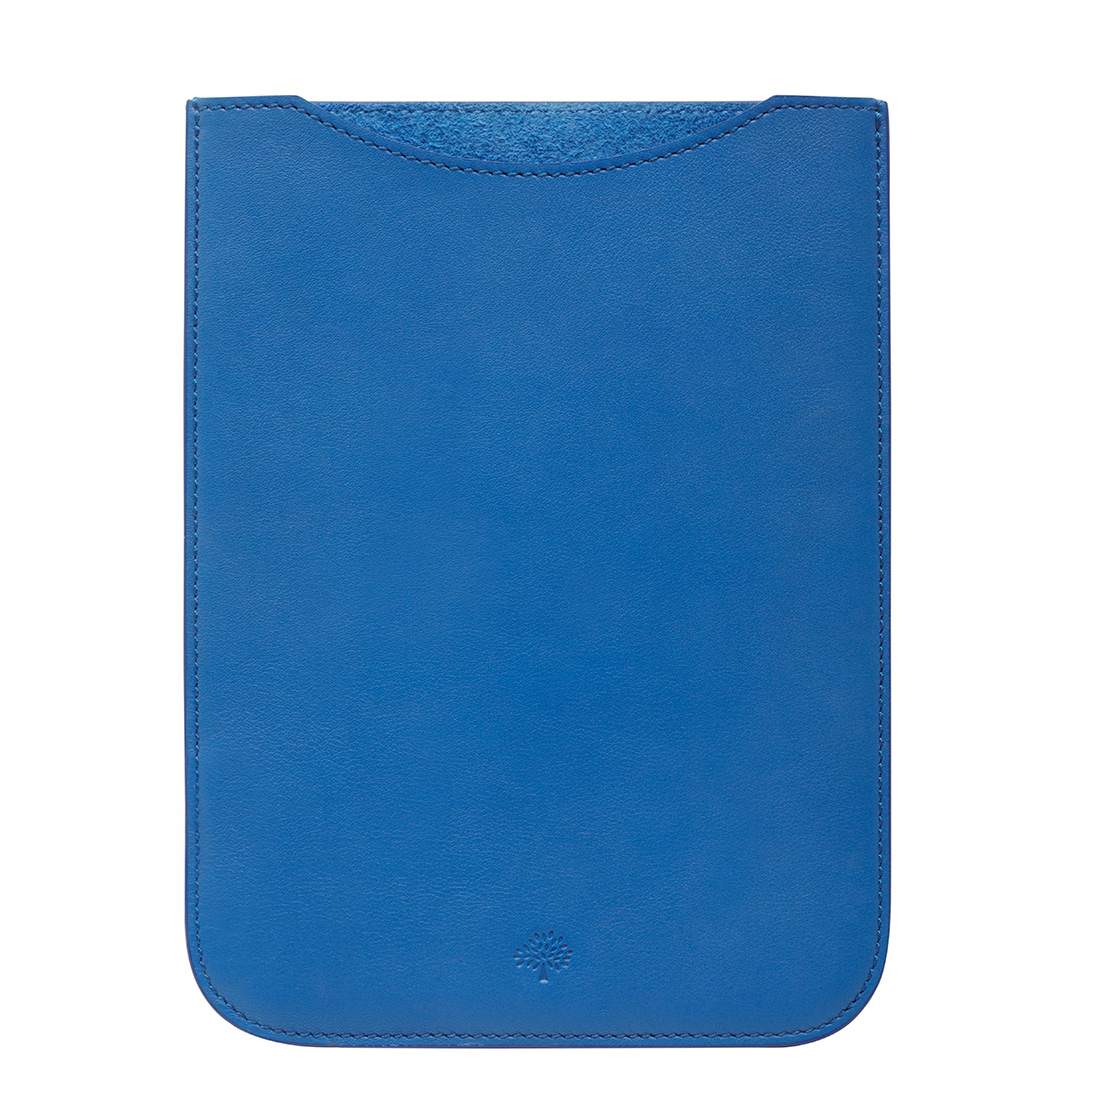 We love the idea of slipping our tablets into this Mulberry case ($250) in a vibrant shade of blue.